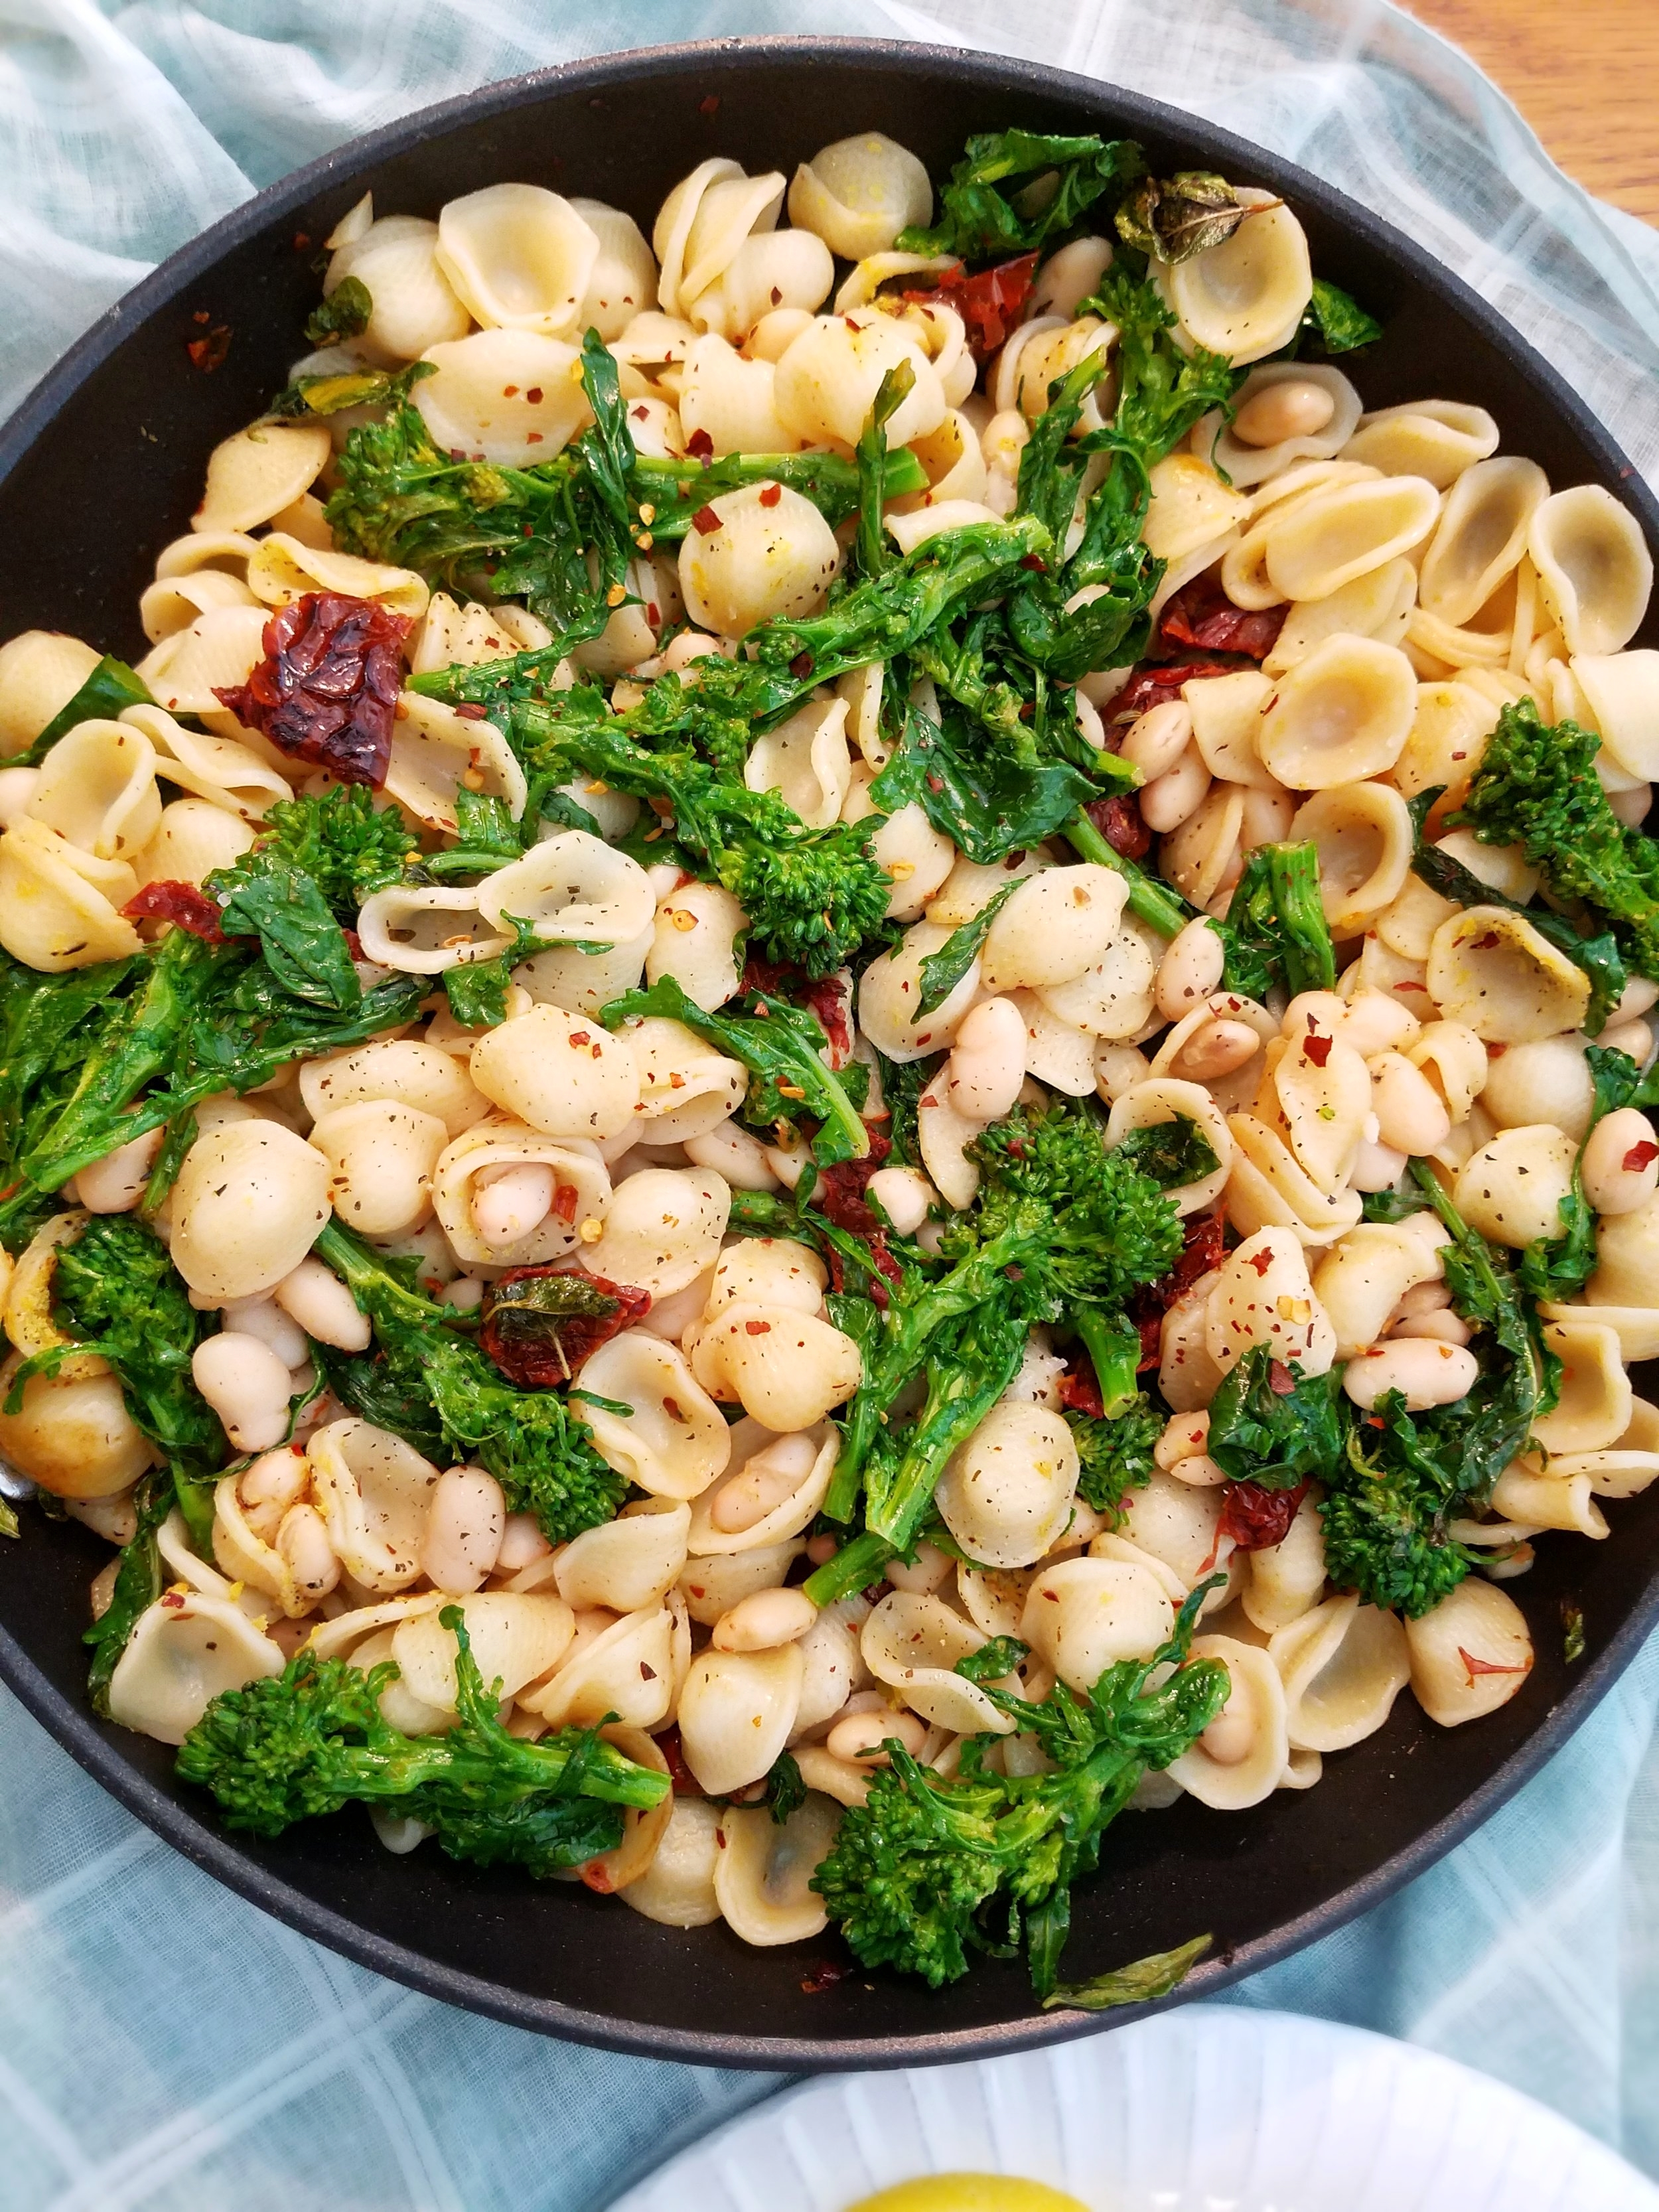 Orecchiette with Broccoli Rabe, Sun-Dried Tomatoes and Cannellini Beans.jpg